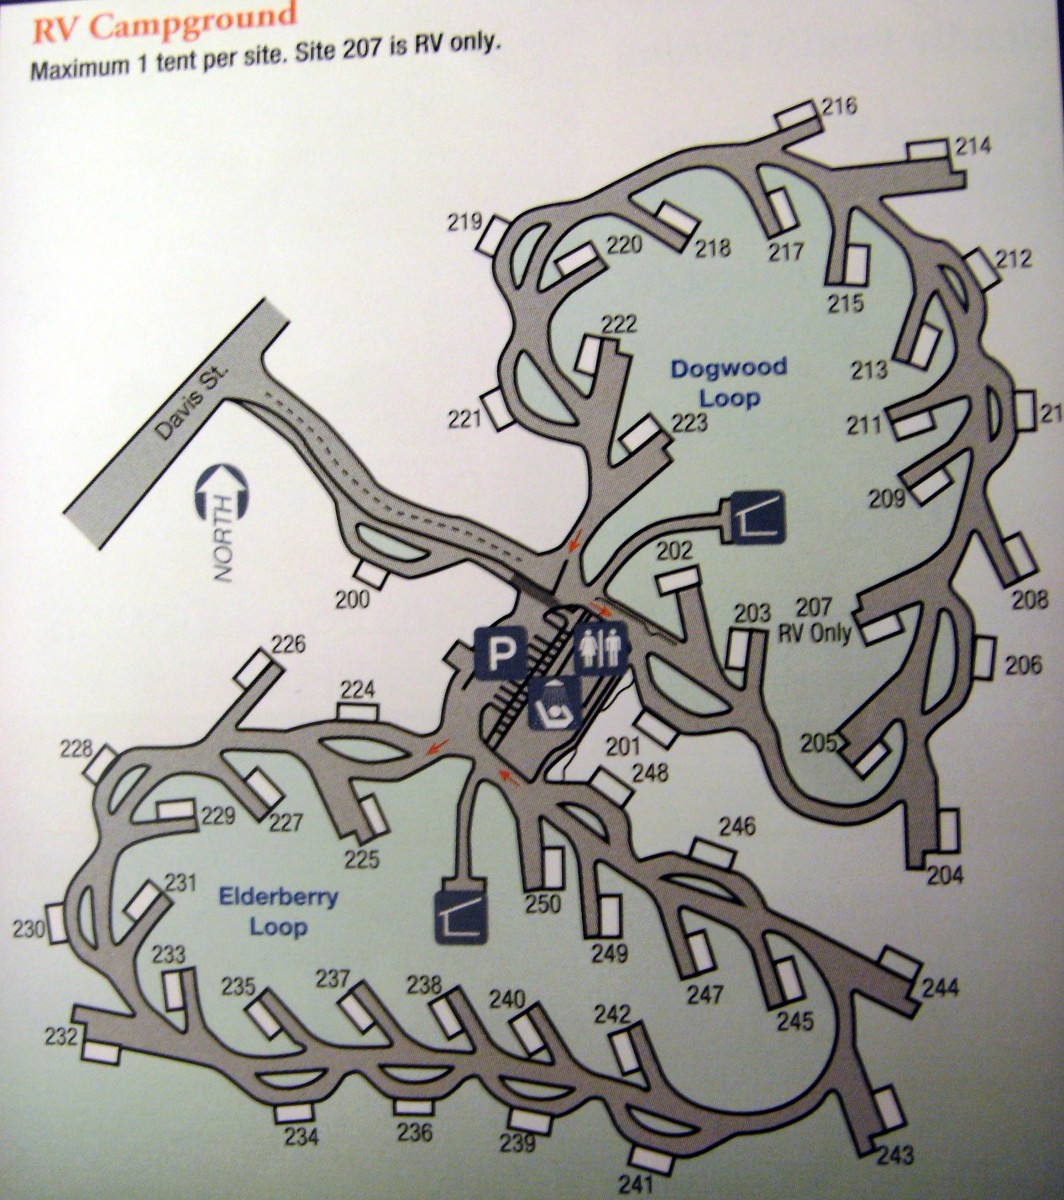 Campsite map of the RV Campground